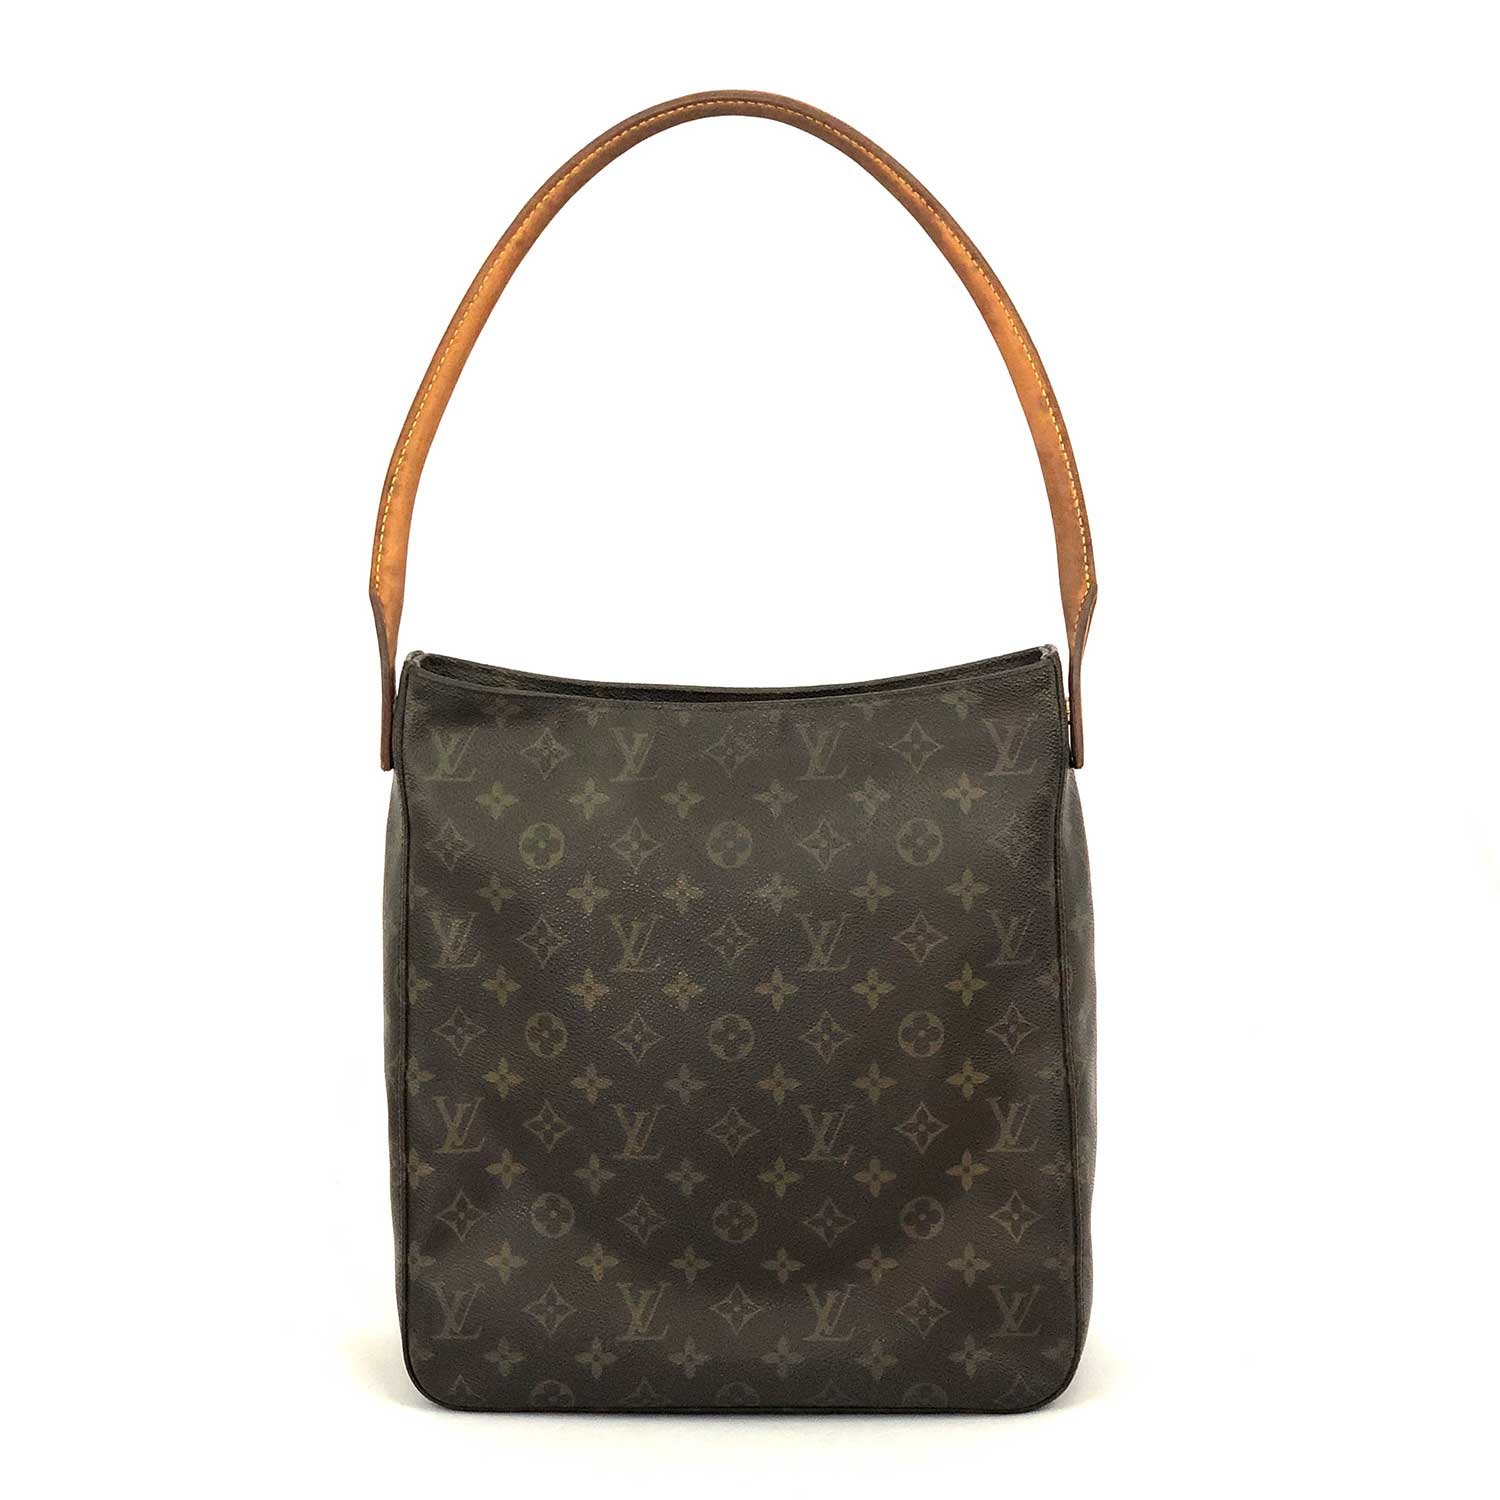 Bolsa Louis Vuitton Looping Monograma